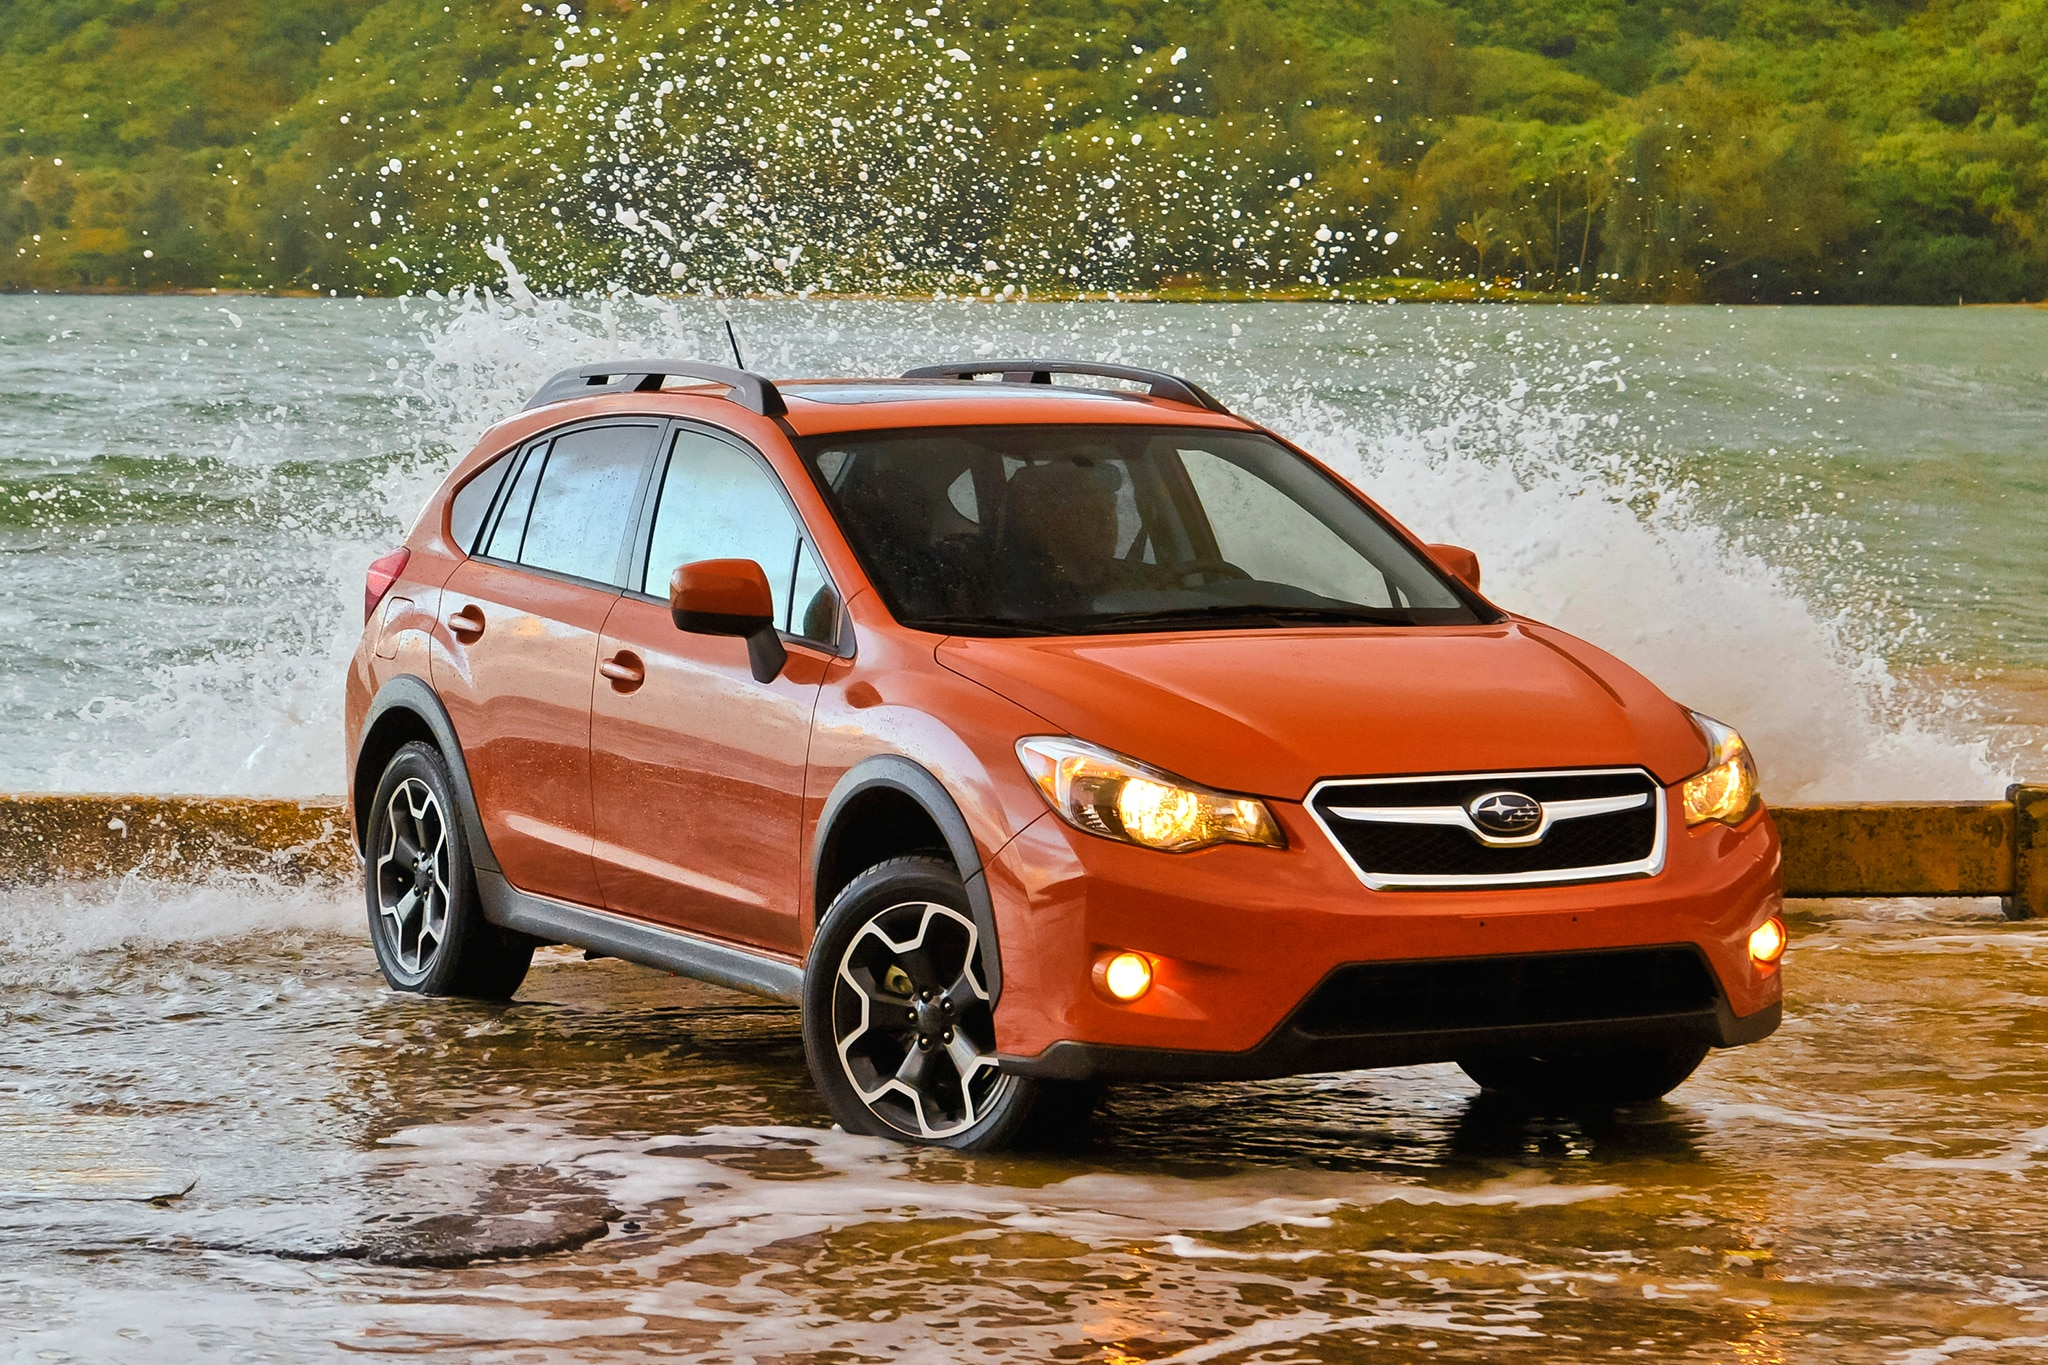 2014 Subaru Xv Crosstrek 2.0I Limited >> 2015 Subaru XV Crosstrek Gains EyeSight, New Infotainment ...